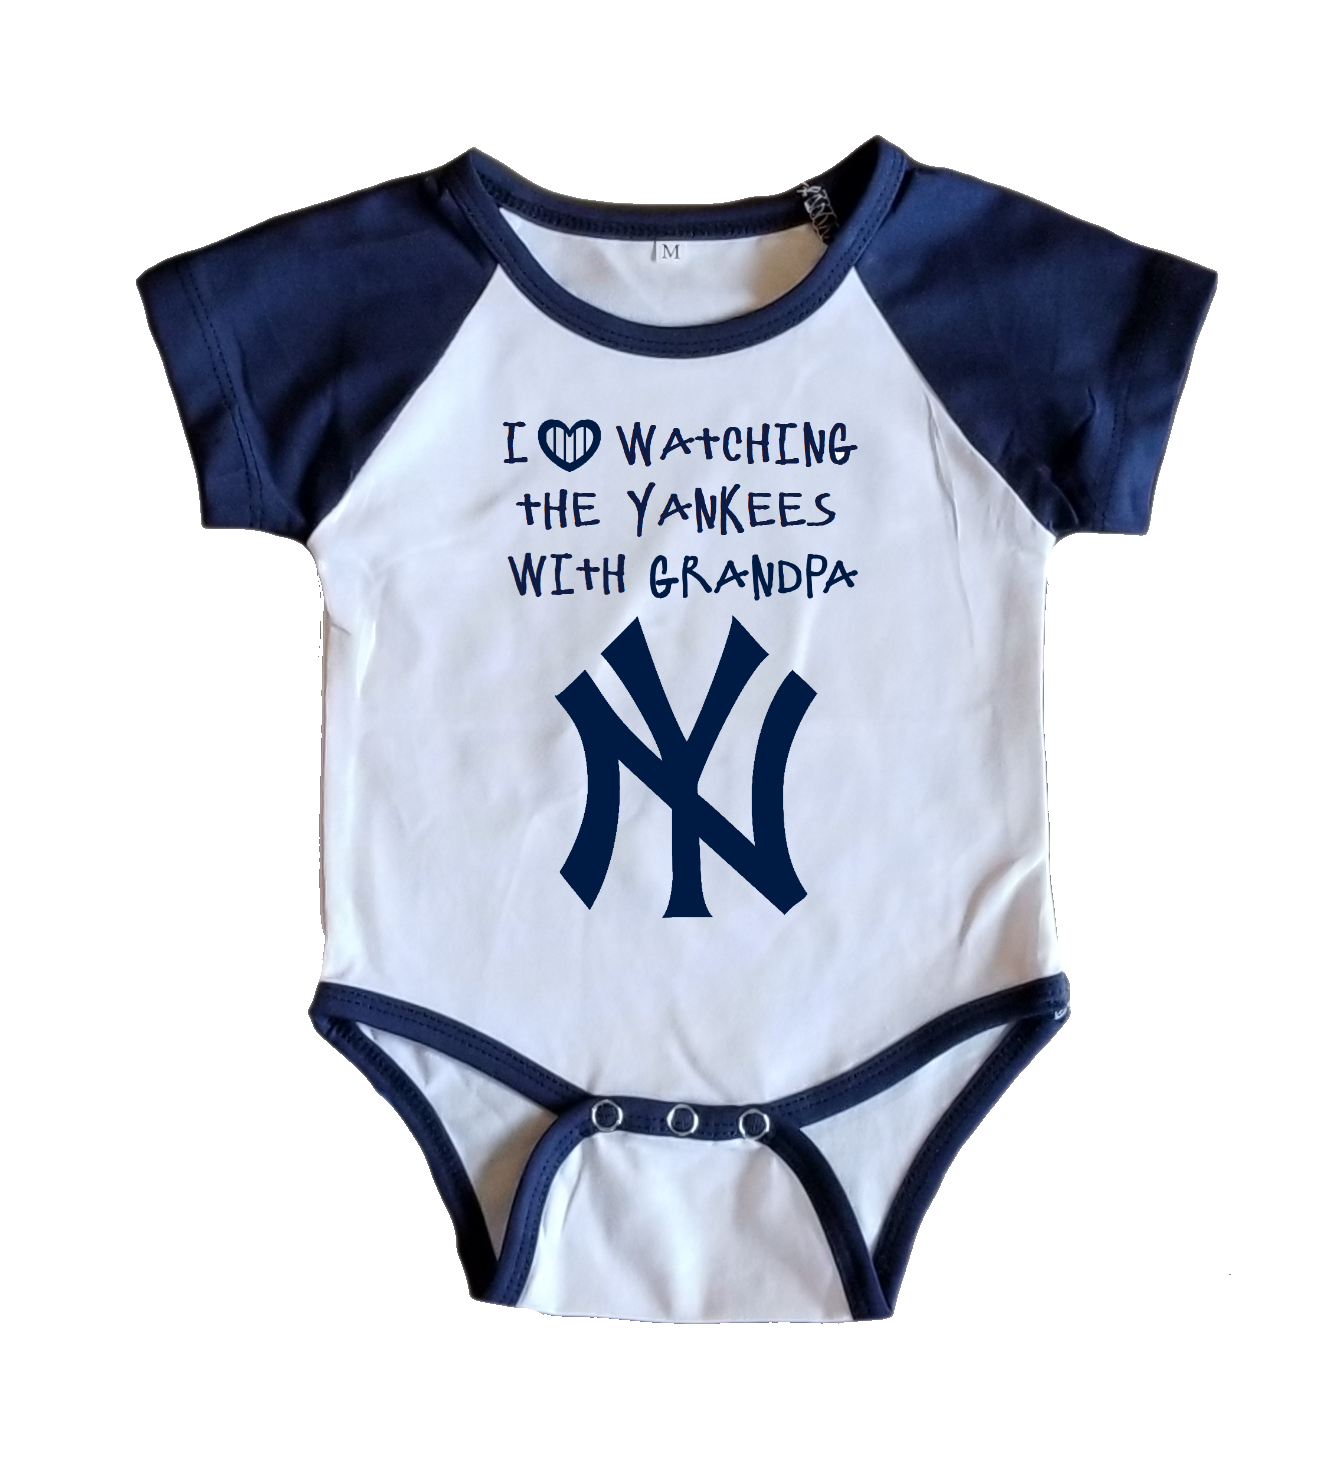 Primary image for NY Yankees Onesie Jersey New York Shirt Outfit Watching With Grandpa